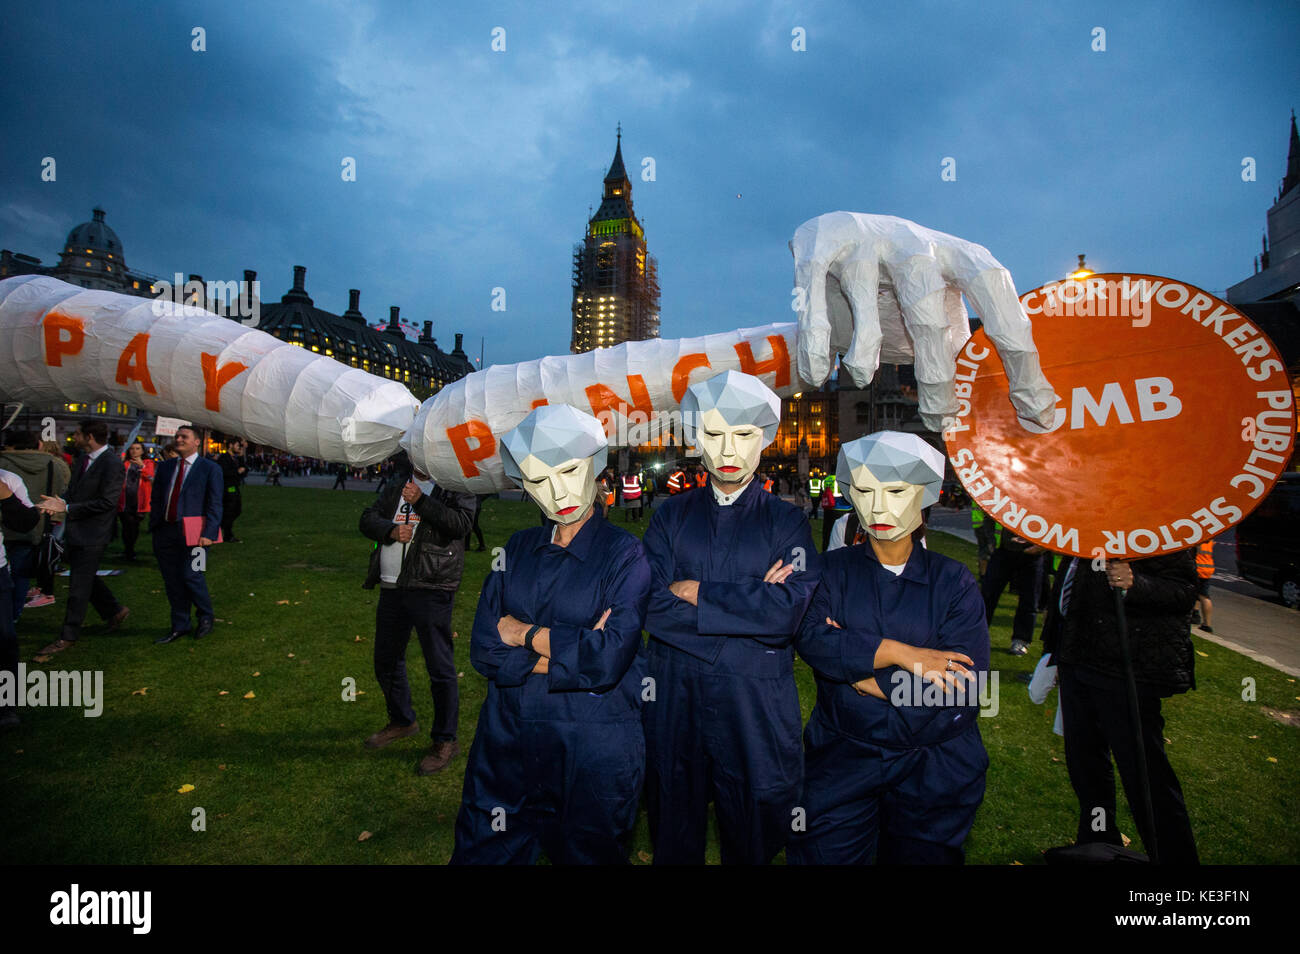 People from the GMB union, dressed as Theresa May, known as 'Maybots', protest at Parliament square at the - Stock Image